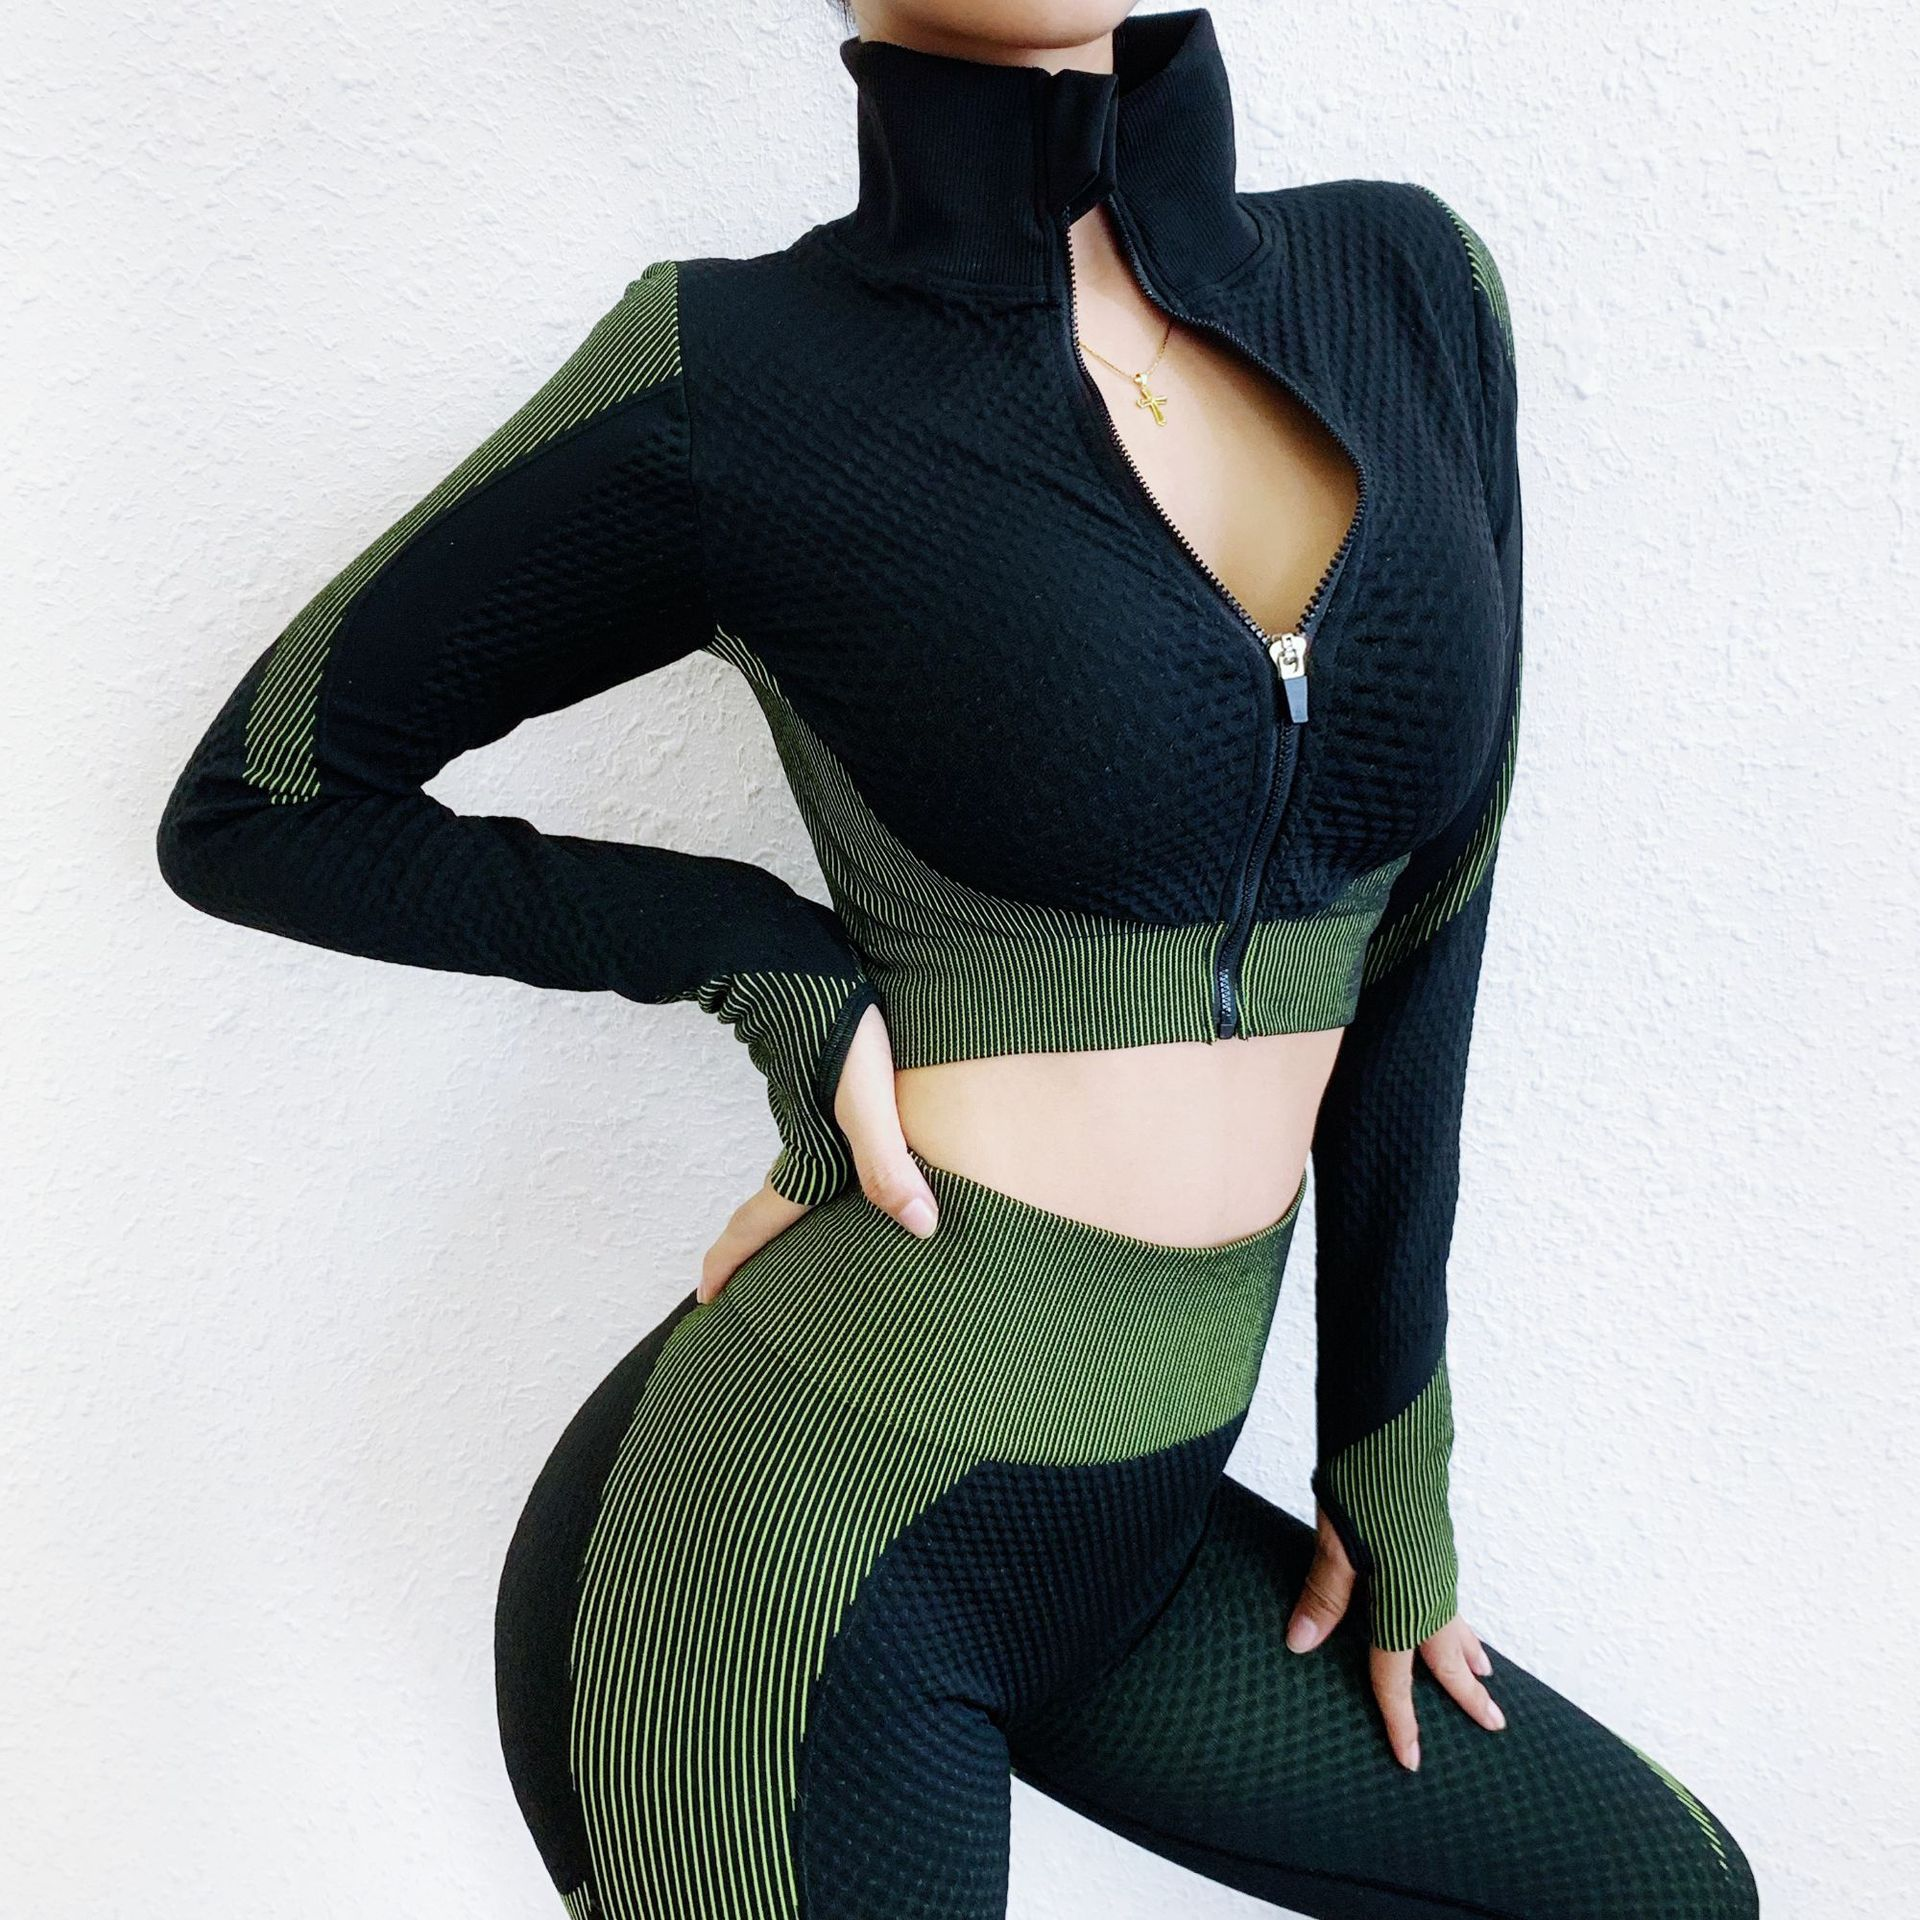 Seamless Gym Clothing Fitness Suit Yoga Set Tracksuit Women Running Clothes Zipper Long Sleeve Crop Top High Waist Yoga Pants